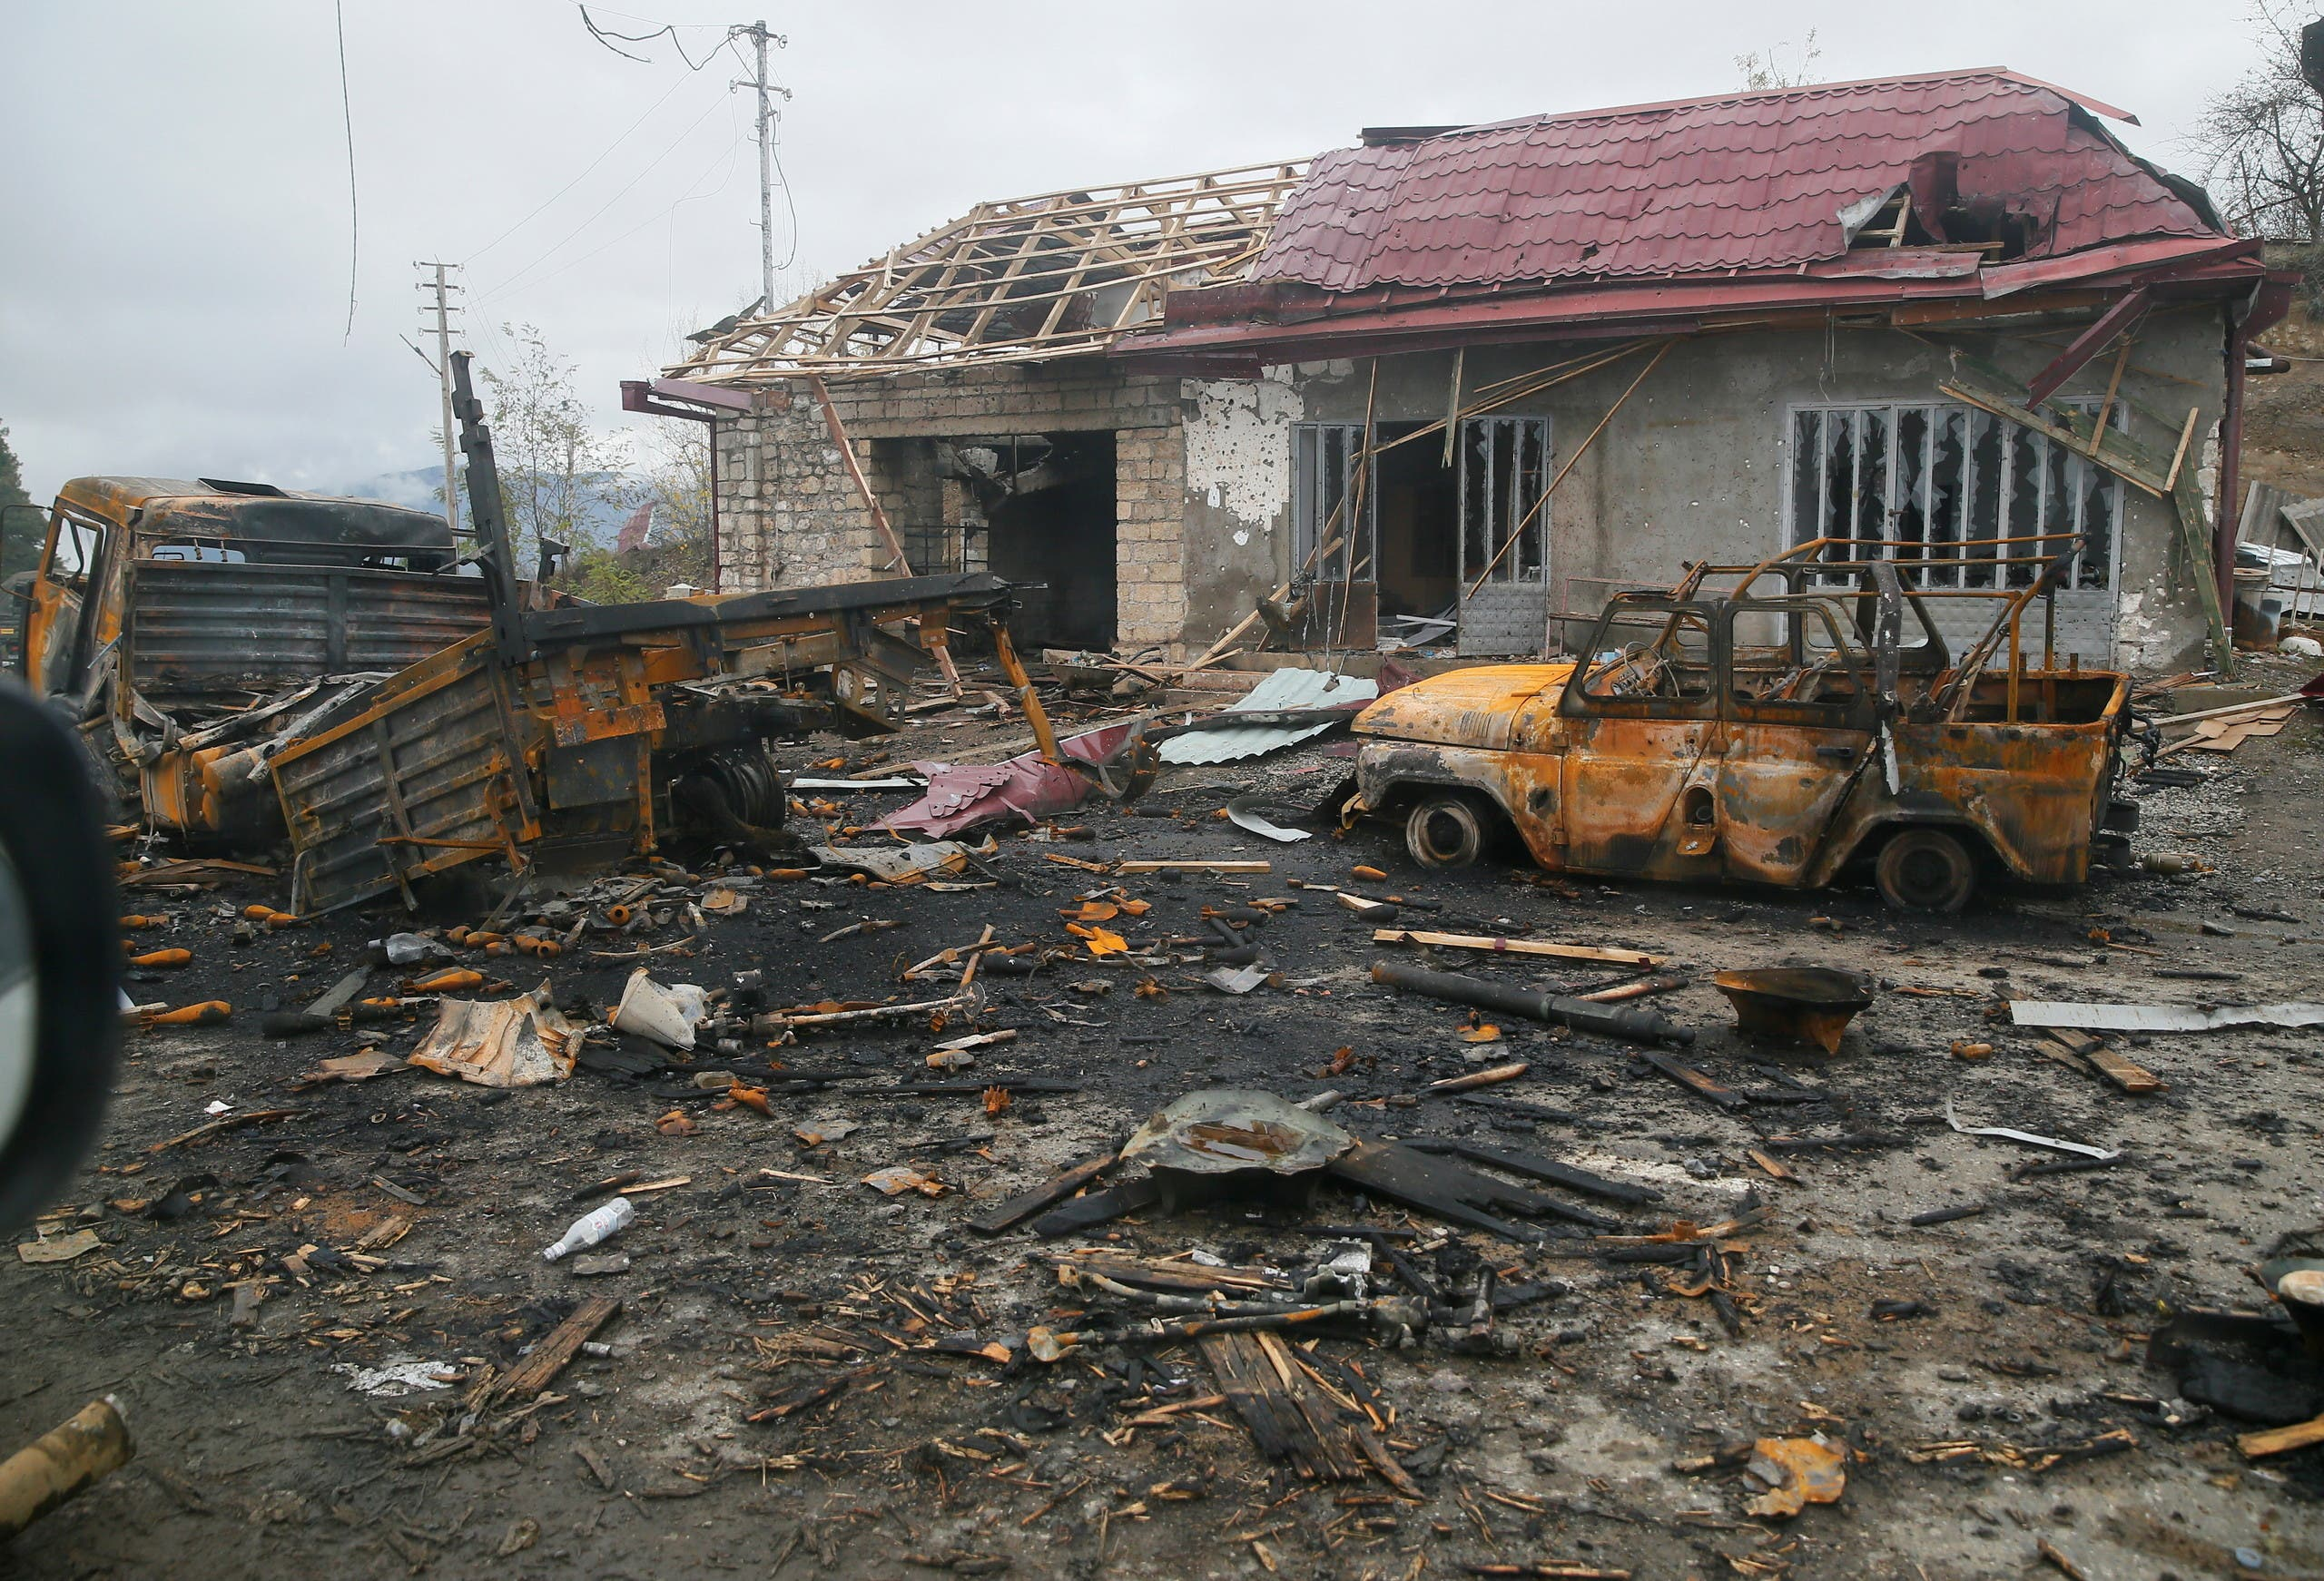 A view shows burnt vehicles and a damaged building on the outskirts of Shusha (Shushi) in the region of Nagorno-Karabakh. (File photo: Reuters)